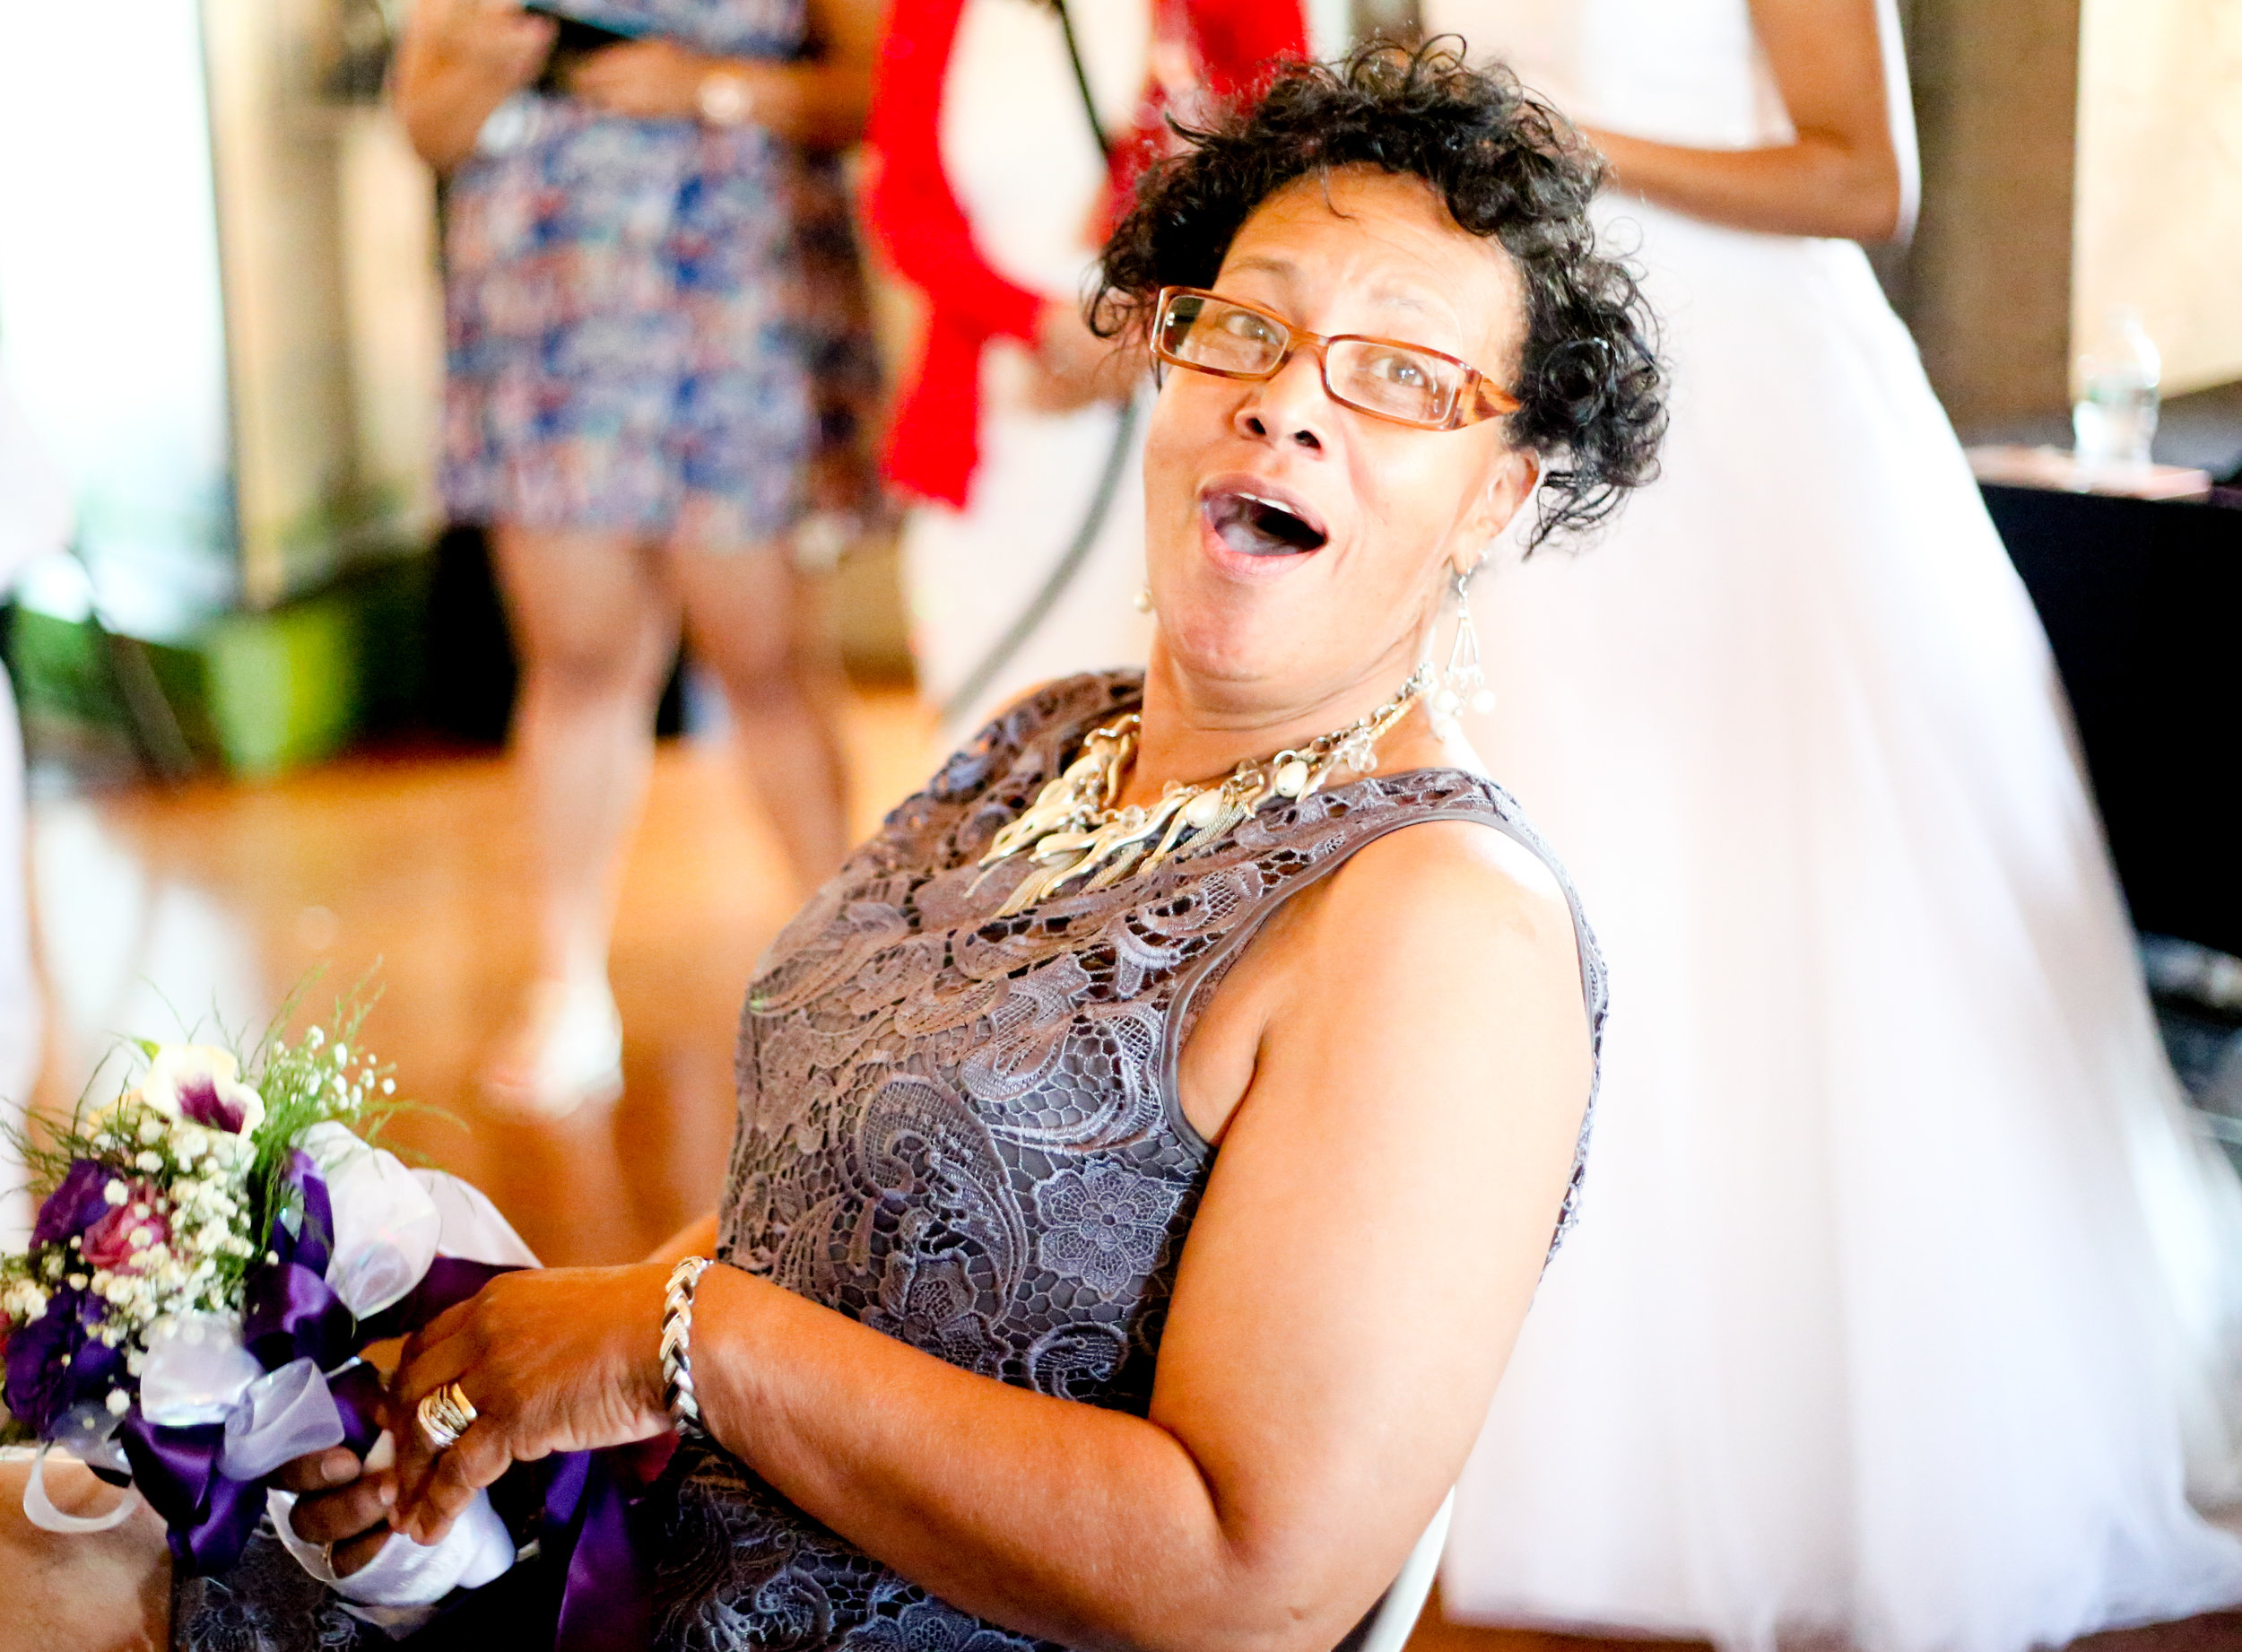 5-24-14_Errol Ebanks_The Finney Wedding_1084.jpg